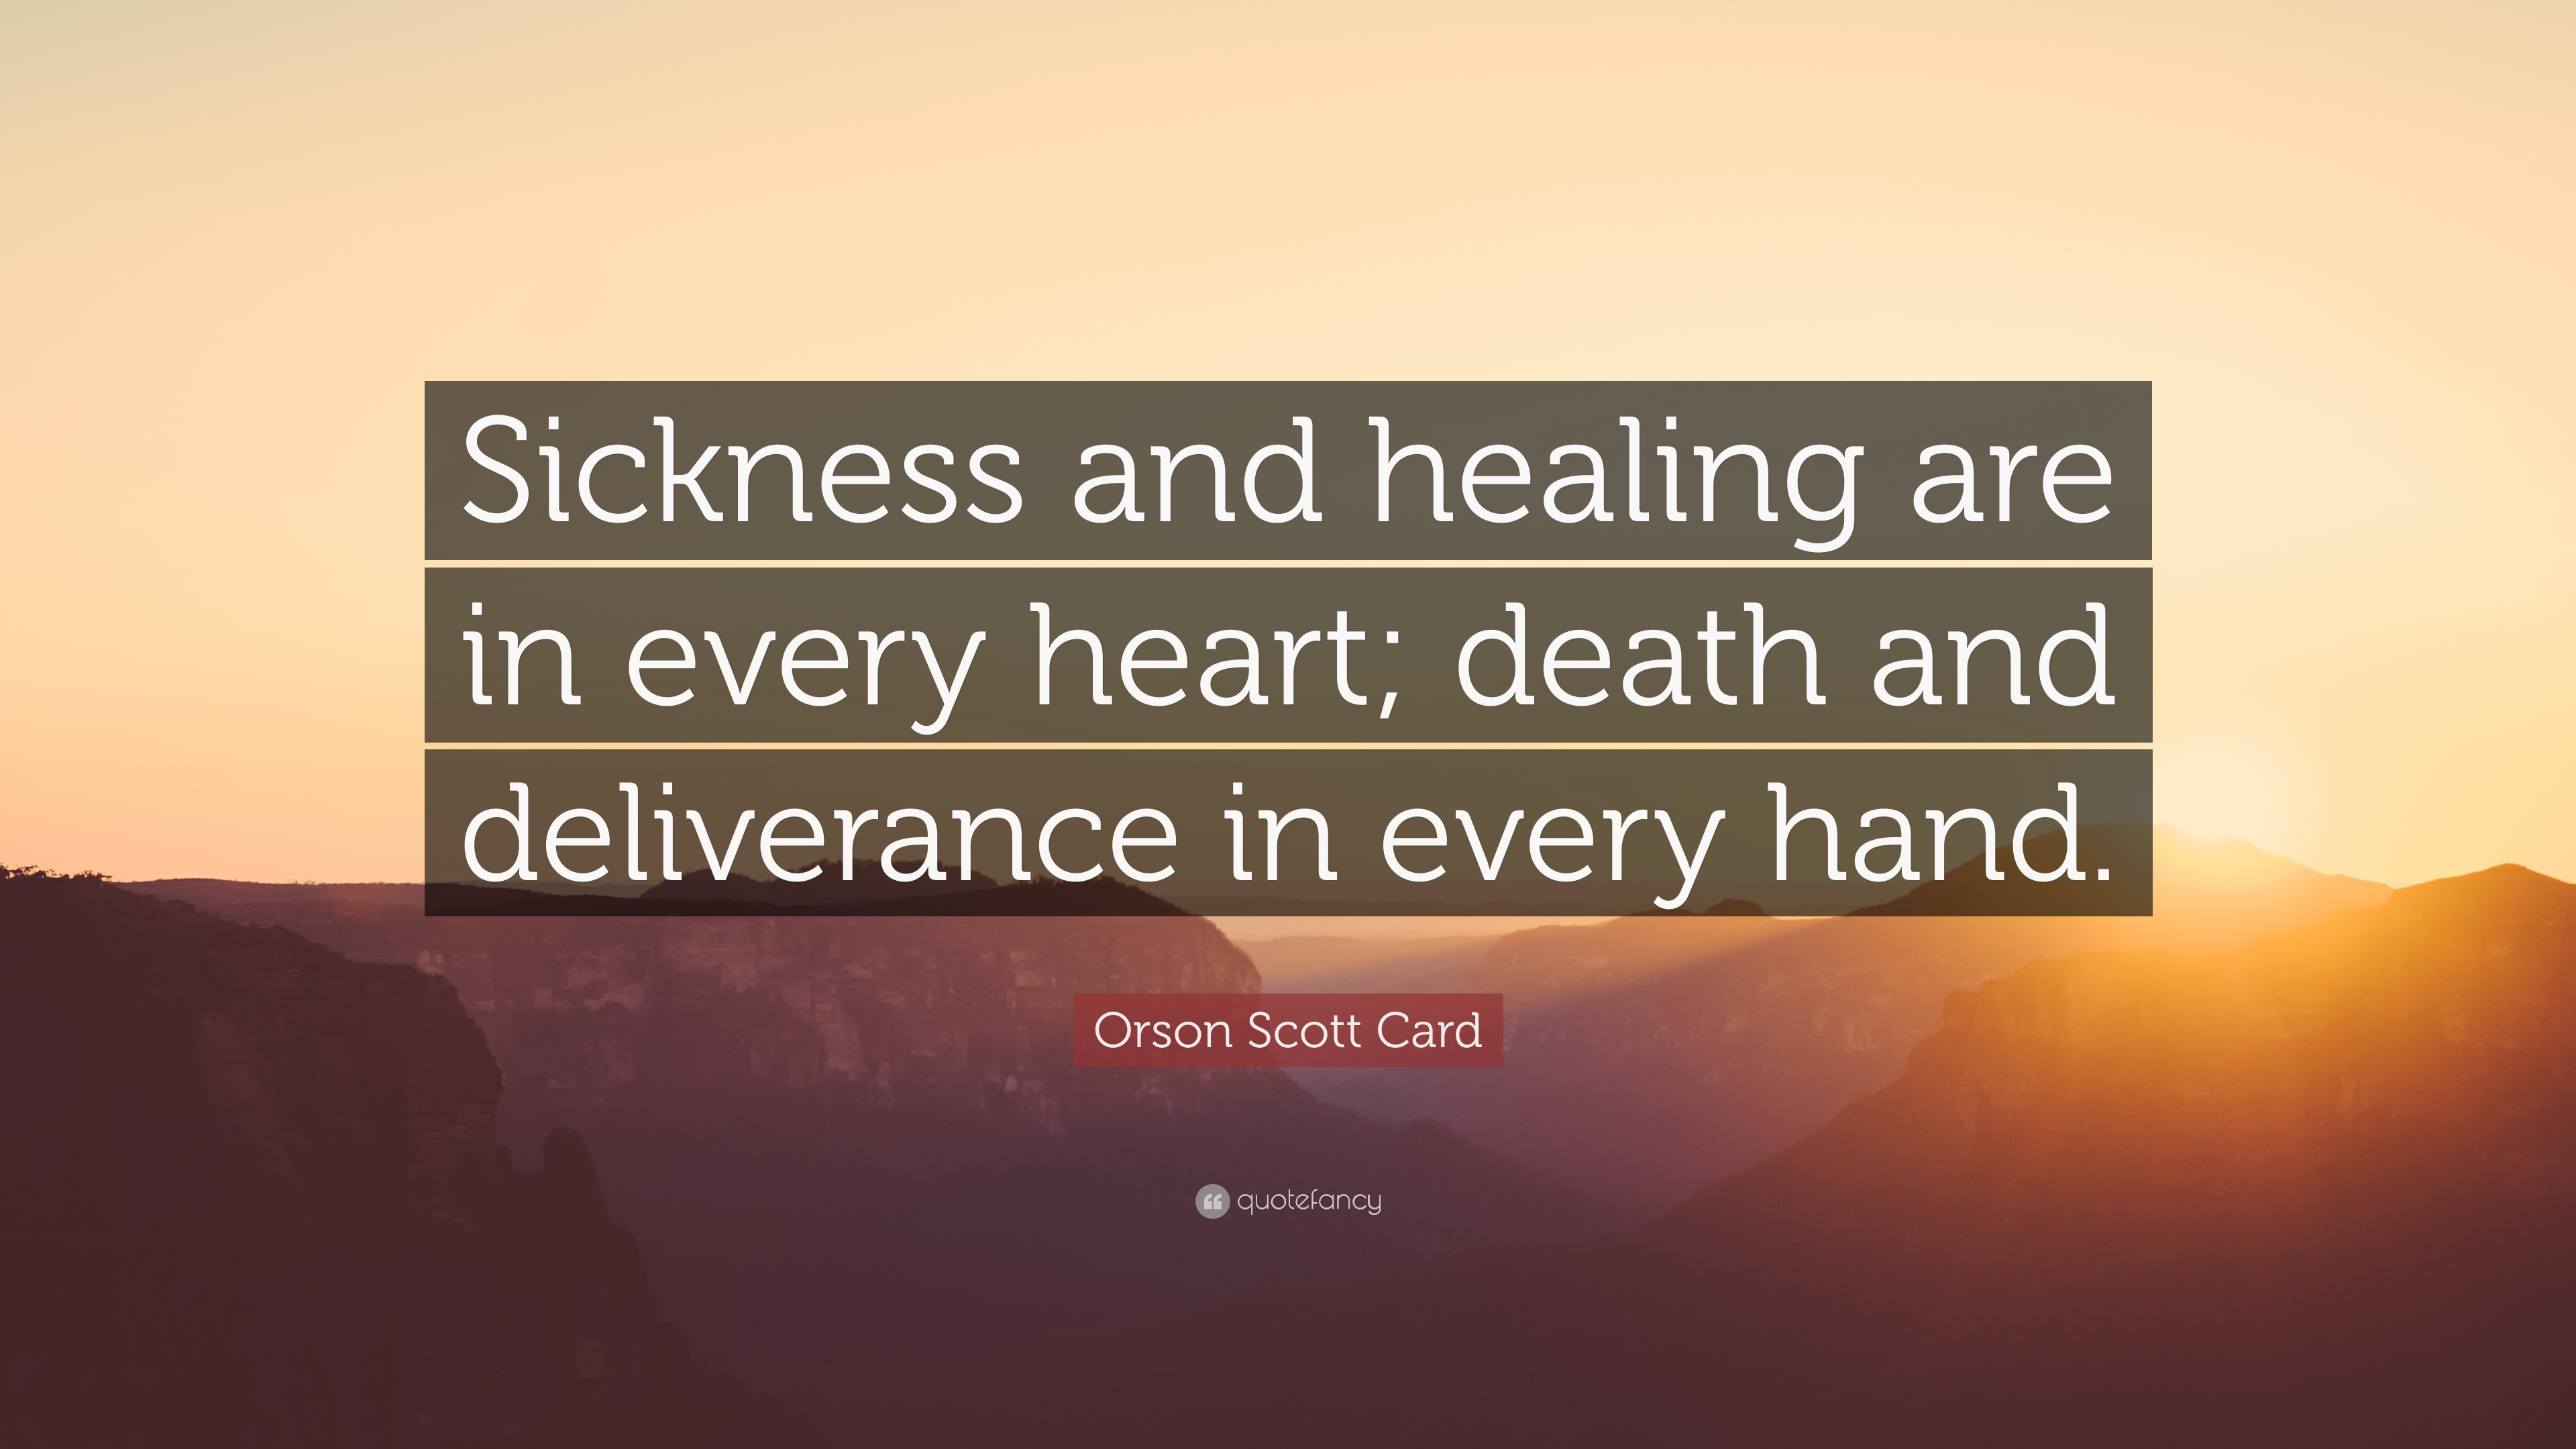 Orson Scott Card Quote: U201cSickness And Healing Are In Every Heart; Death And